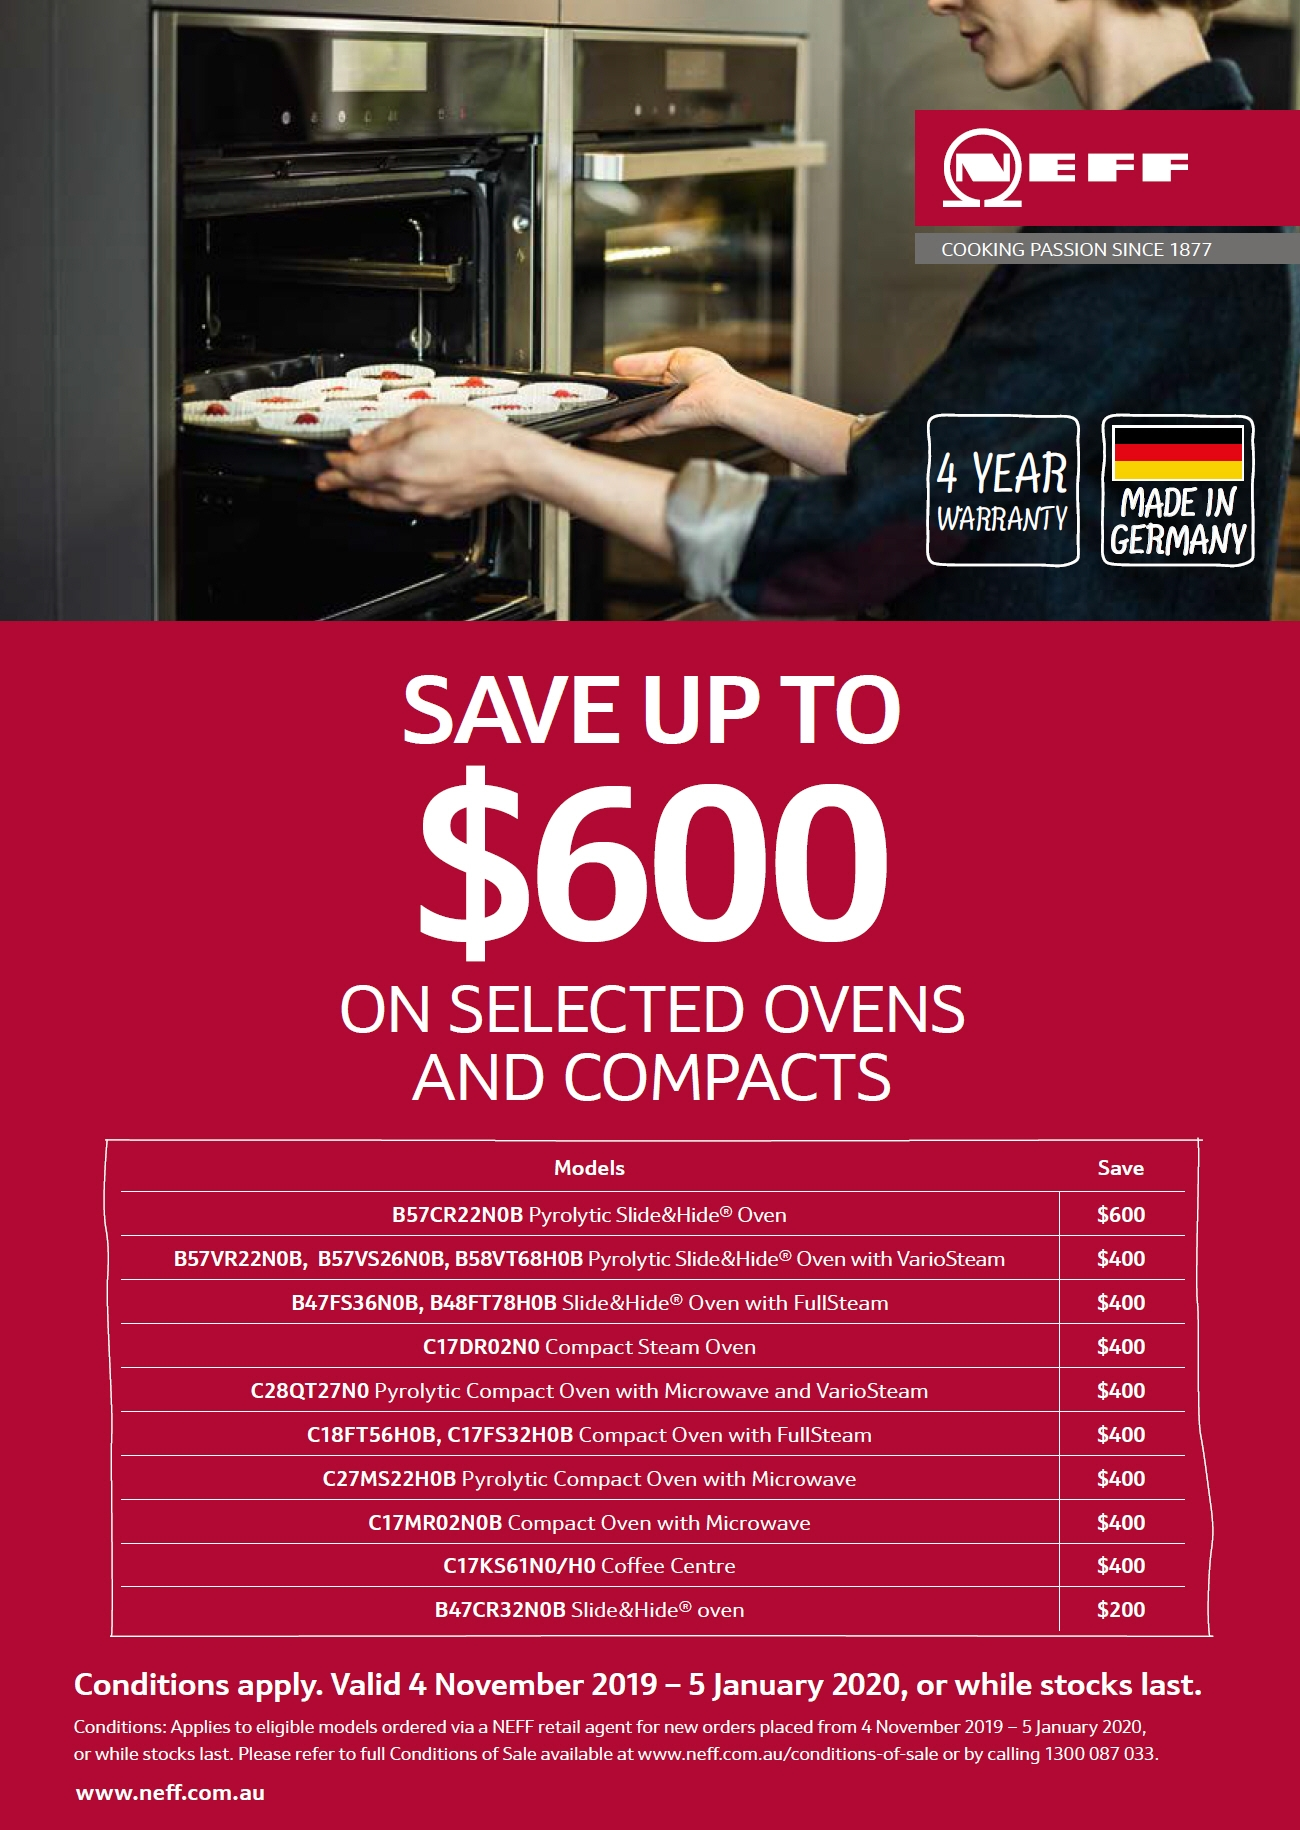 NEFF Save $600 on Selected Oven